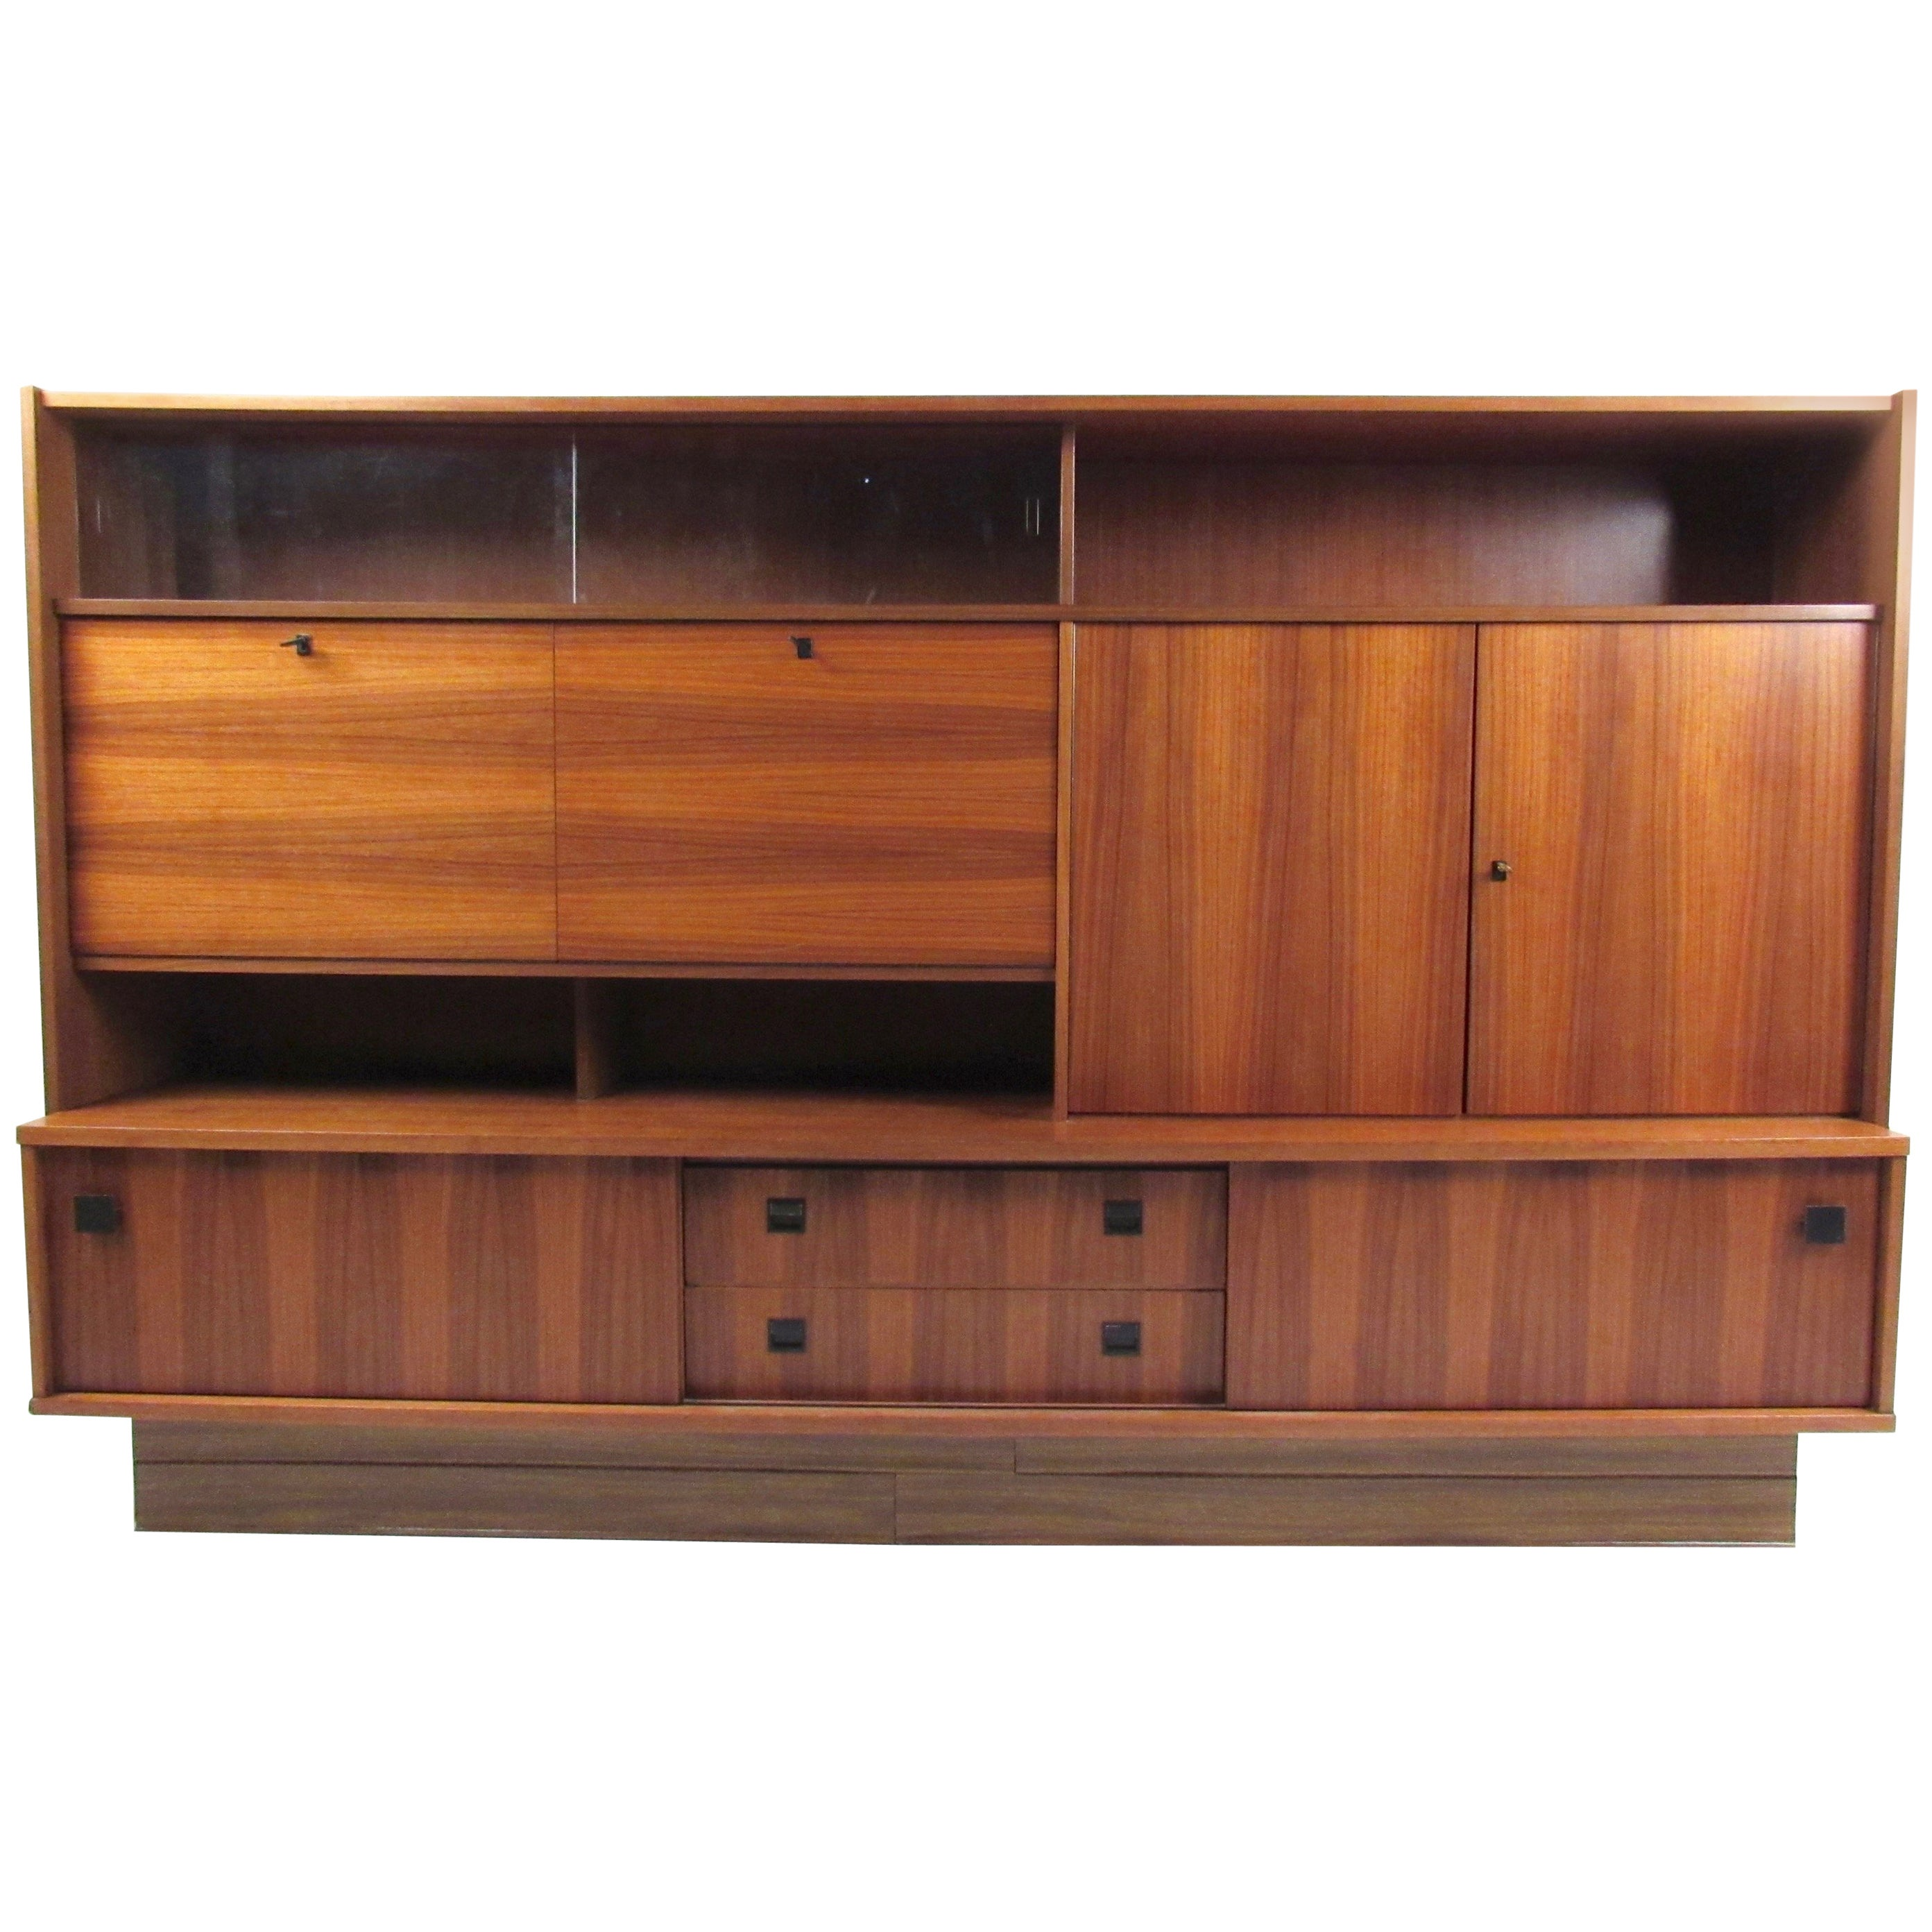 Large Mid-Century Modern Bookcase or Wall Unit